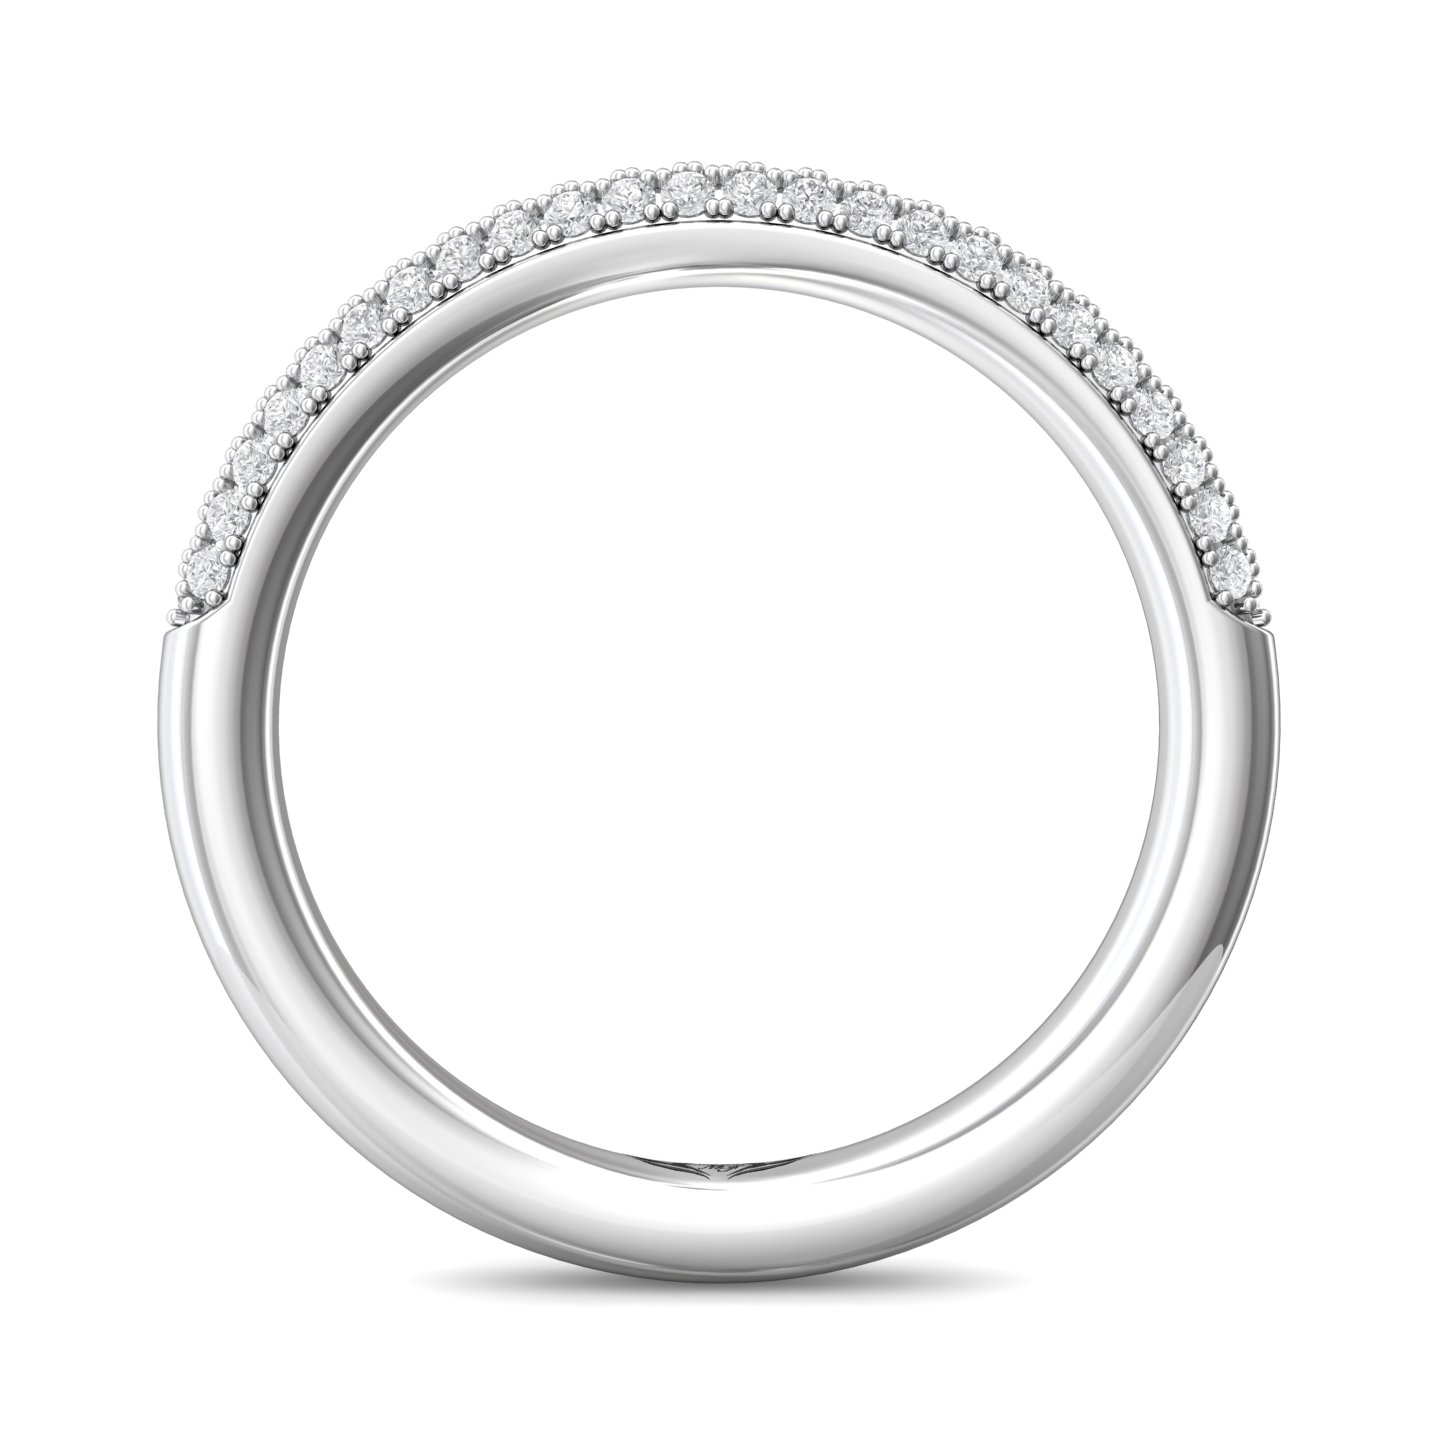 Rings - 14K White Gold FlyerFit Micropave Wedding Band - image #2